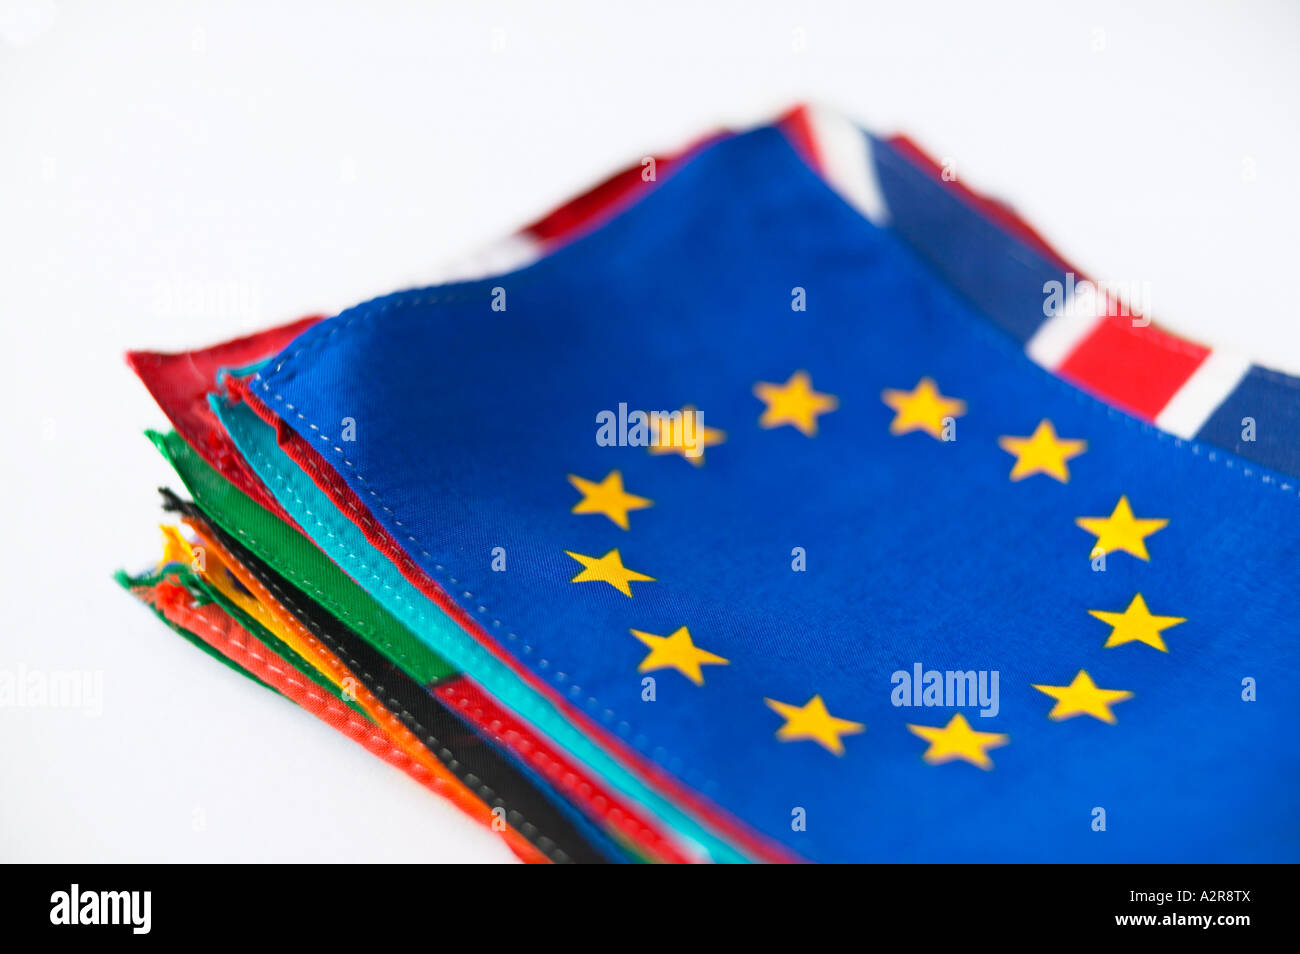 European Union Flag Europe EEC laying on top of pile of National Flags white background - Stock Image